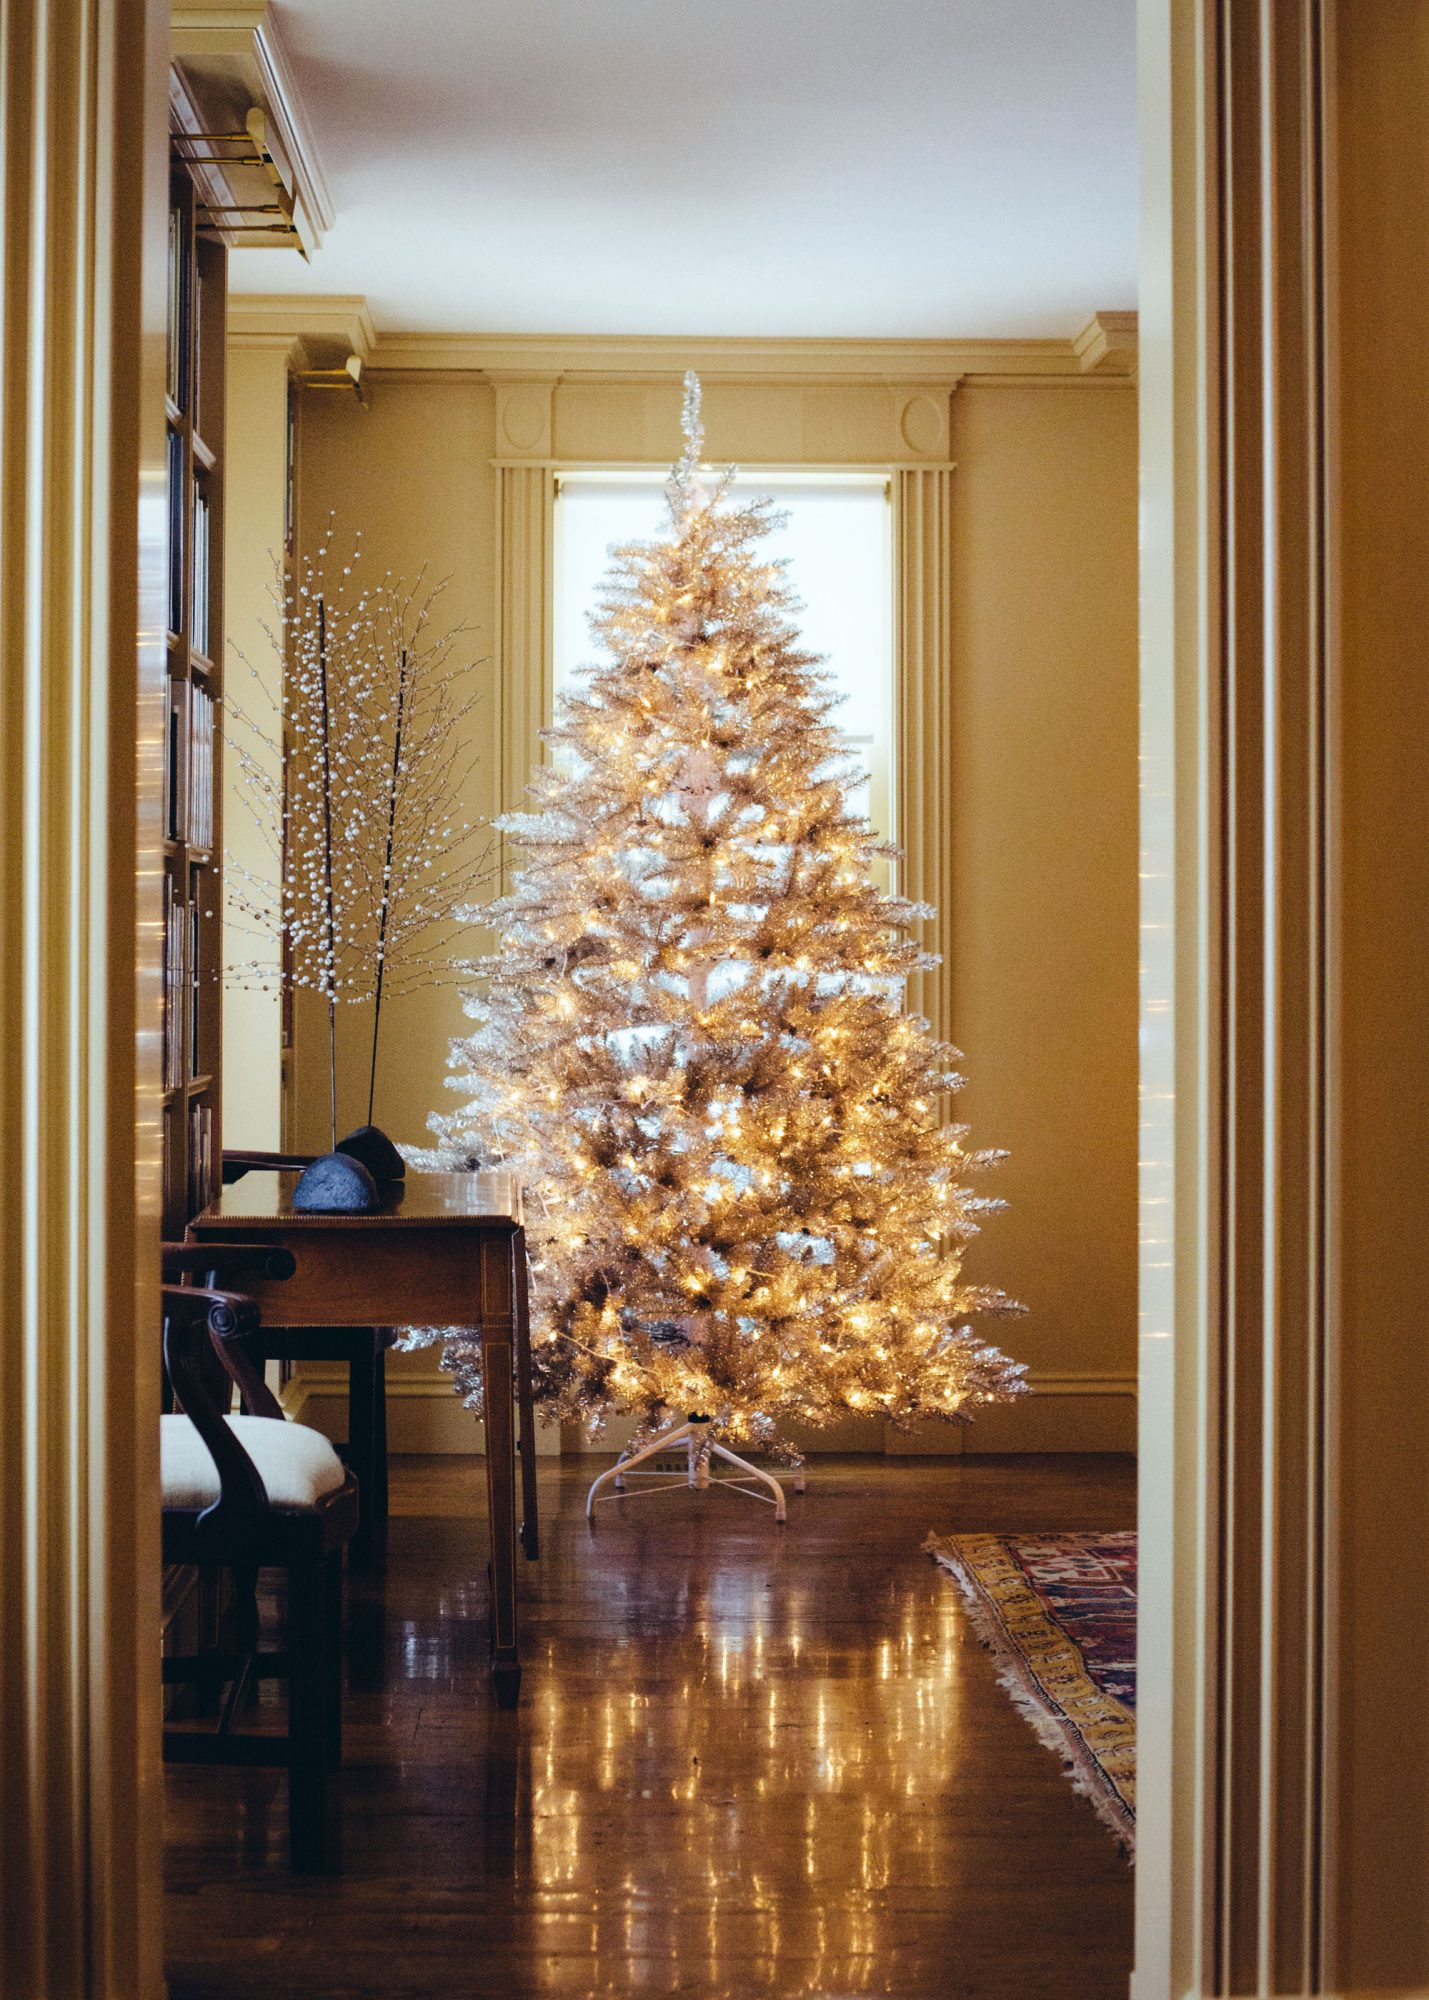 How to Recycle, or Reuse, an Artificial Christmas Tree